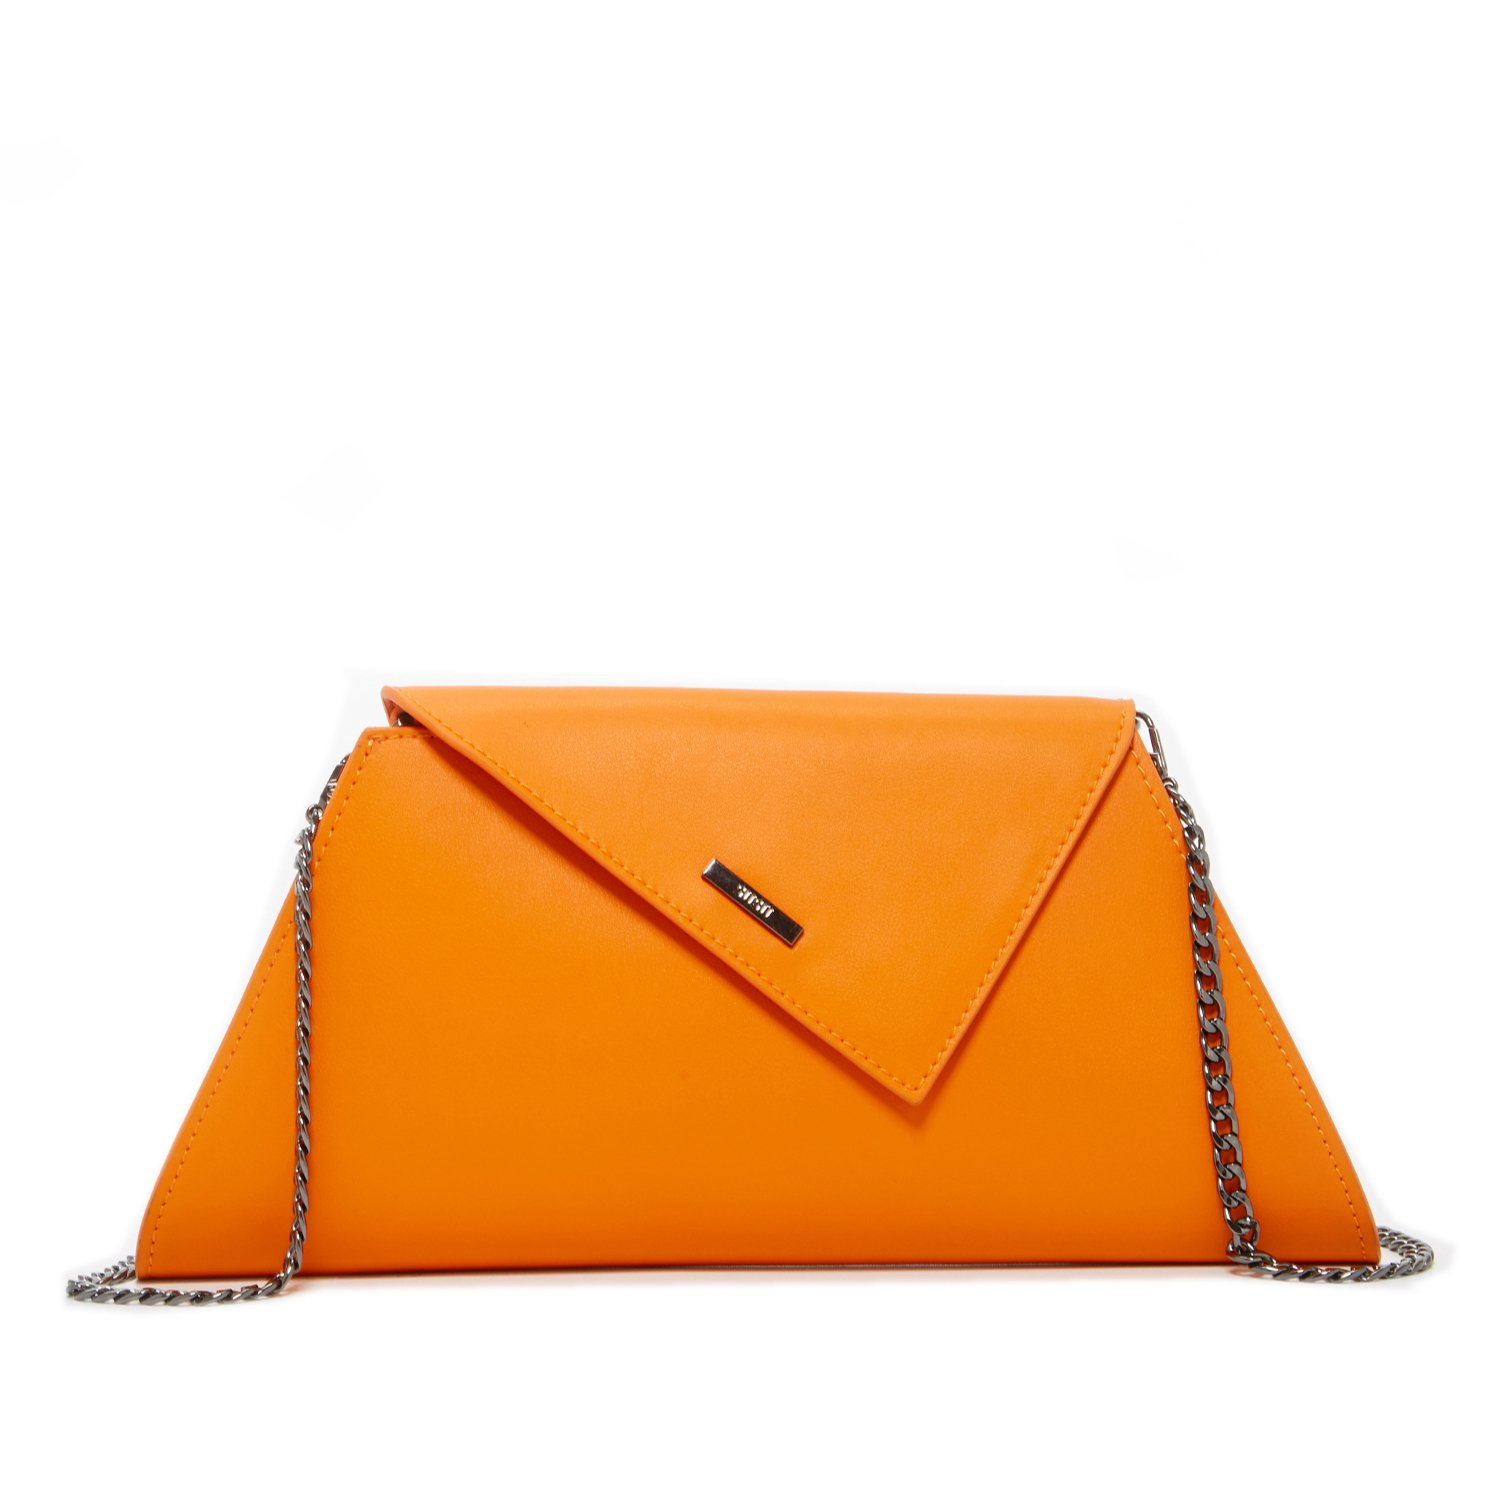 Orange Clutch Purse for Women - Evening Leather Bag Summer Clutches for Wedding Bridal Gift Purses Designer Fashion Handbags Ladies Zipper Closure Envelope Bags with Crossbody Shoulder Chain Strap